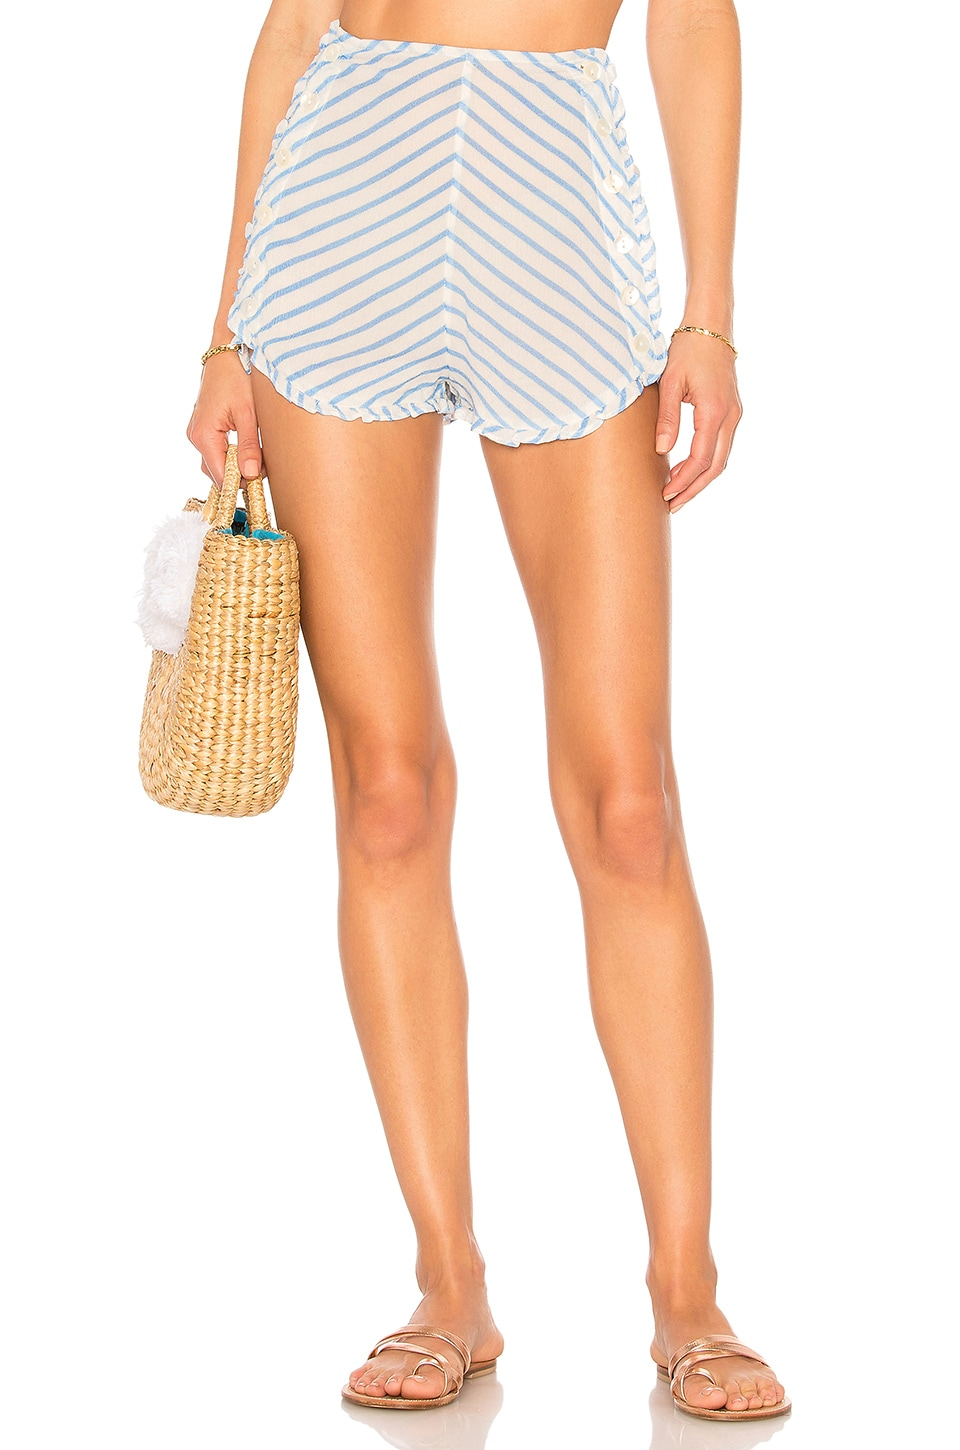 Tularosa Ray Short in Periwinkle Blue